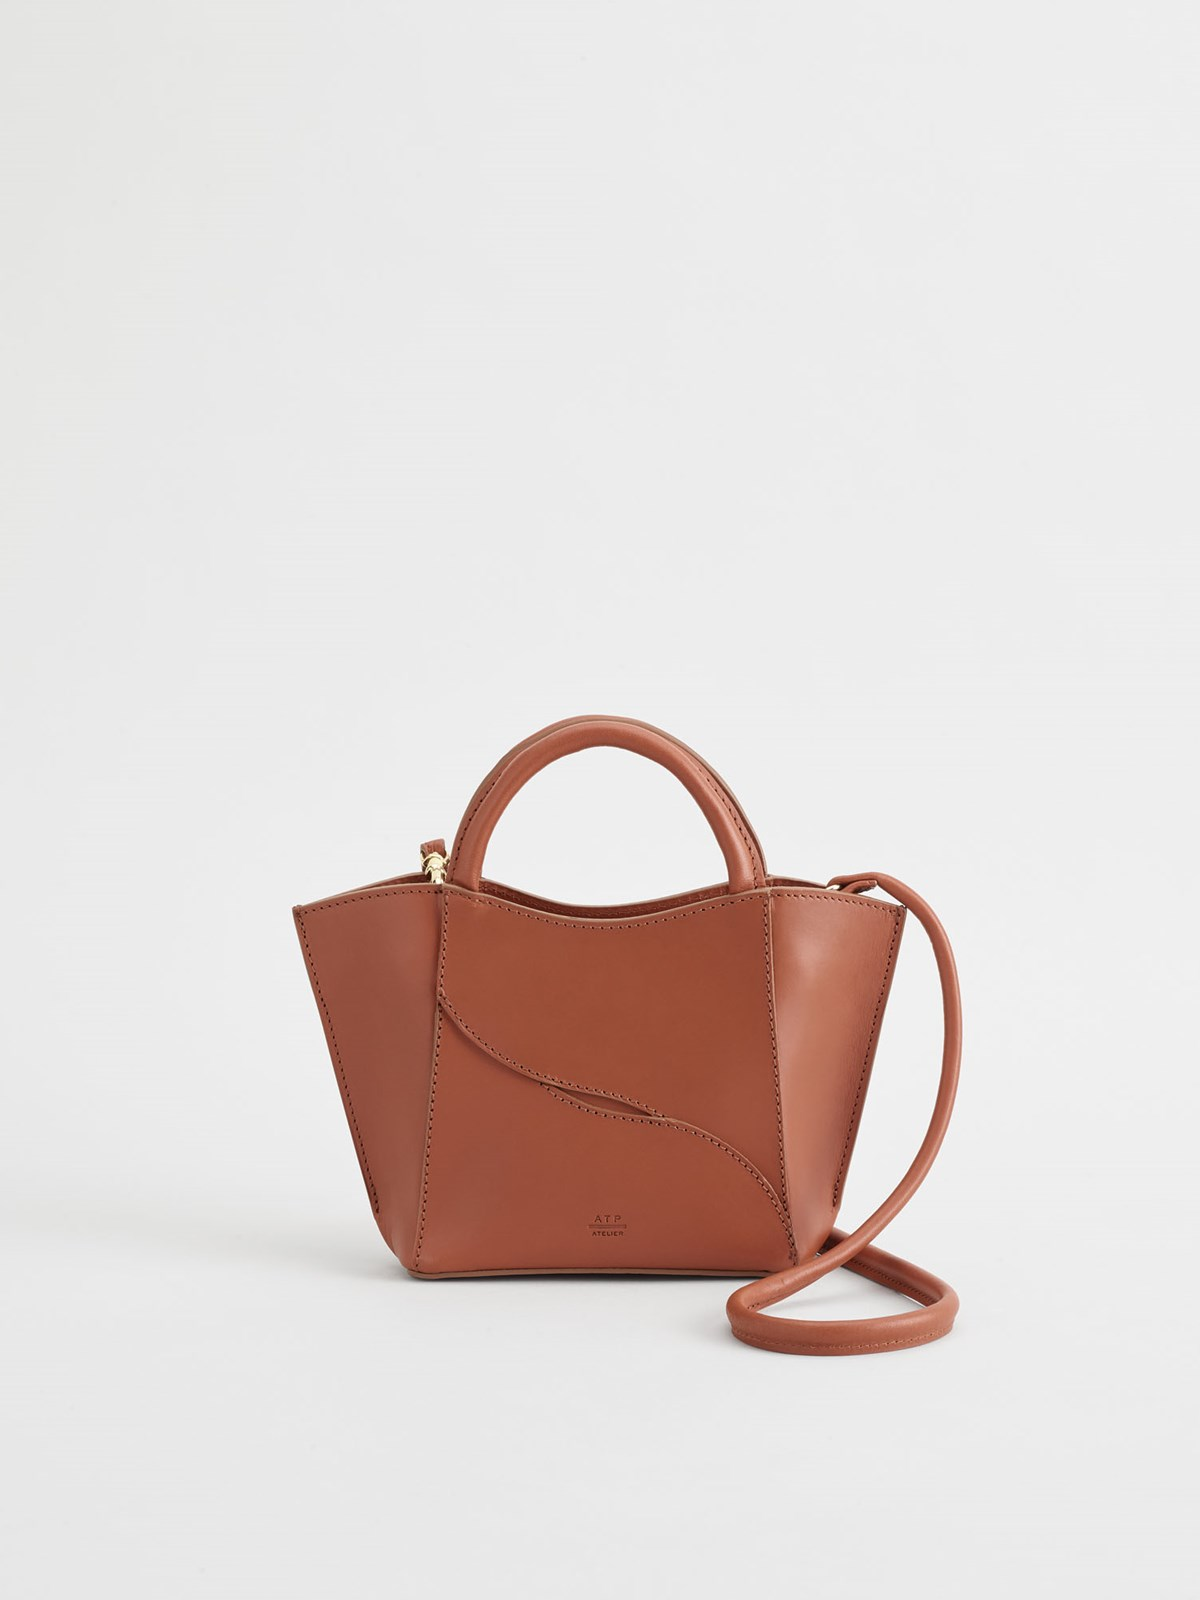 Leuca Rust Mini handbag